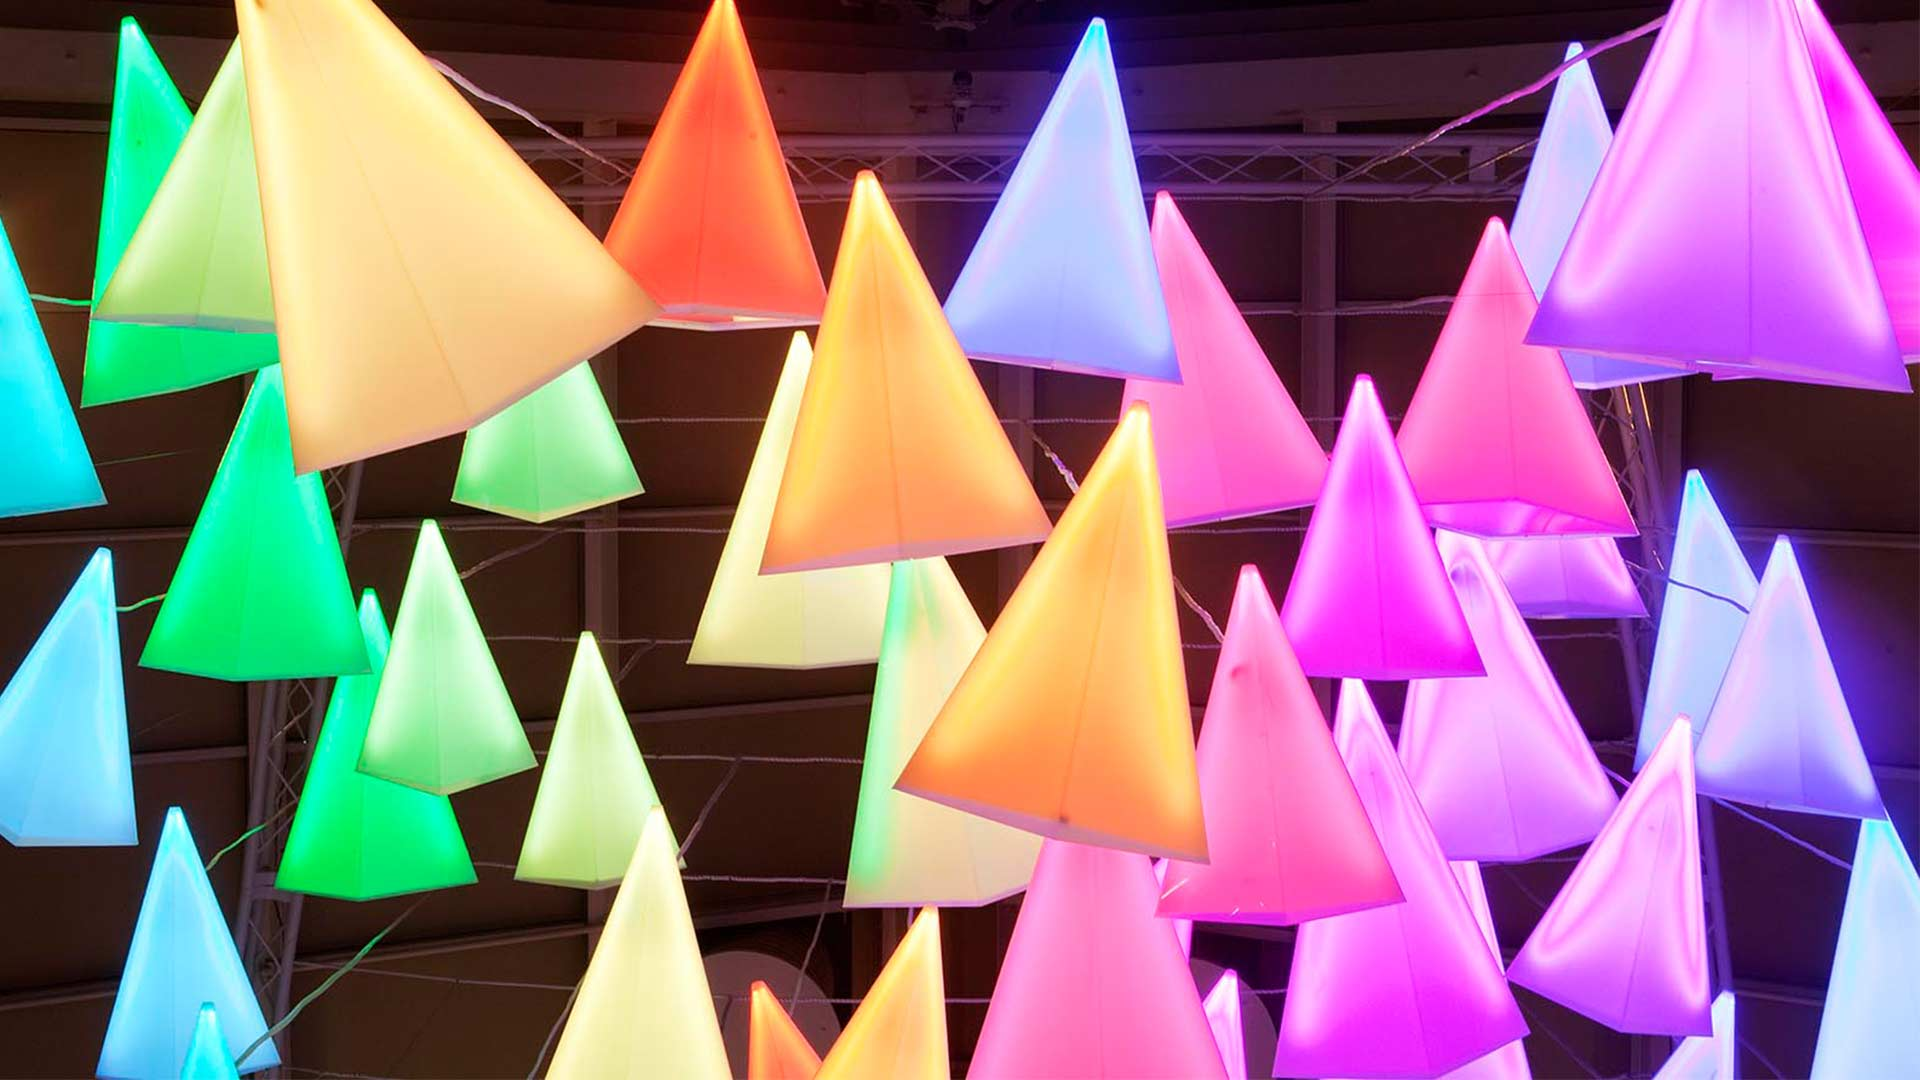 Colour Dynamic Cones Light Art Feature Installation Retail Lighting Design Nulty